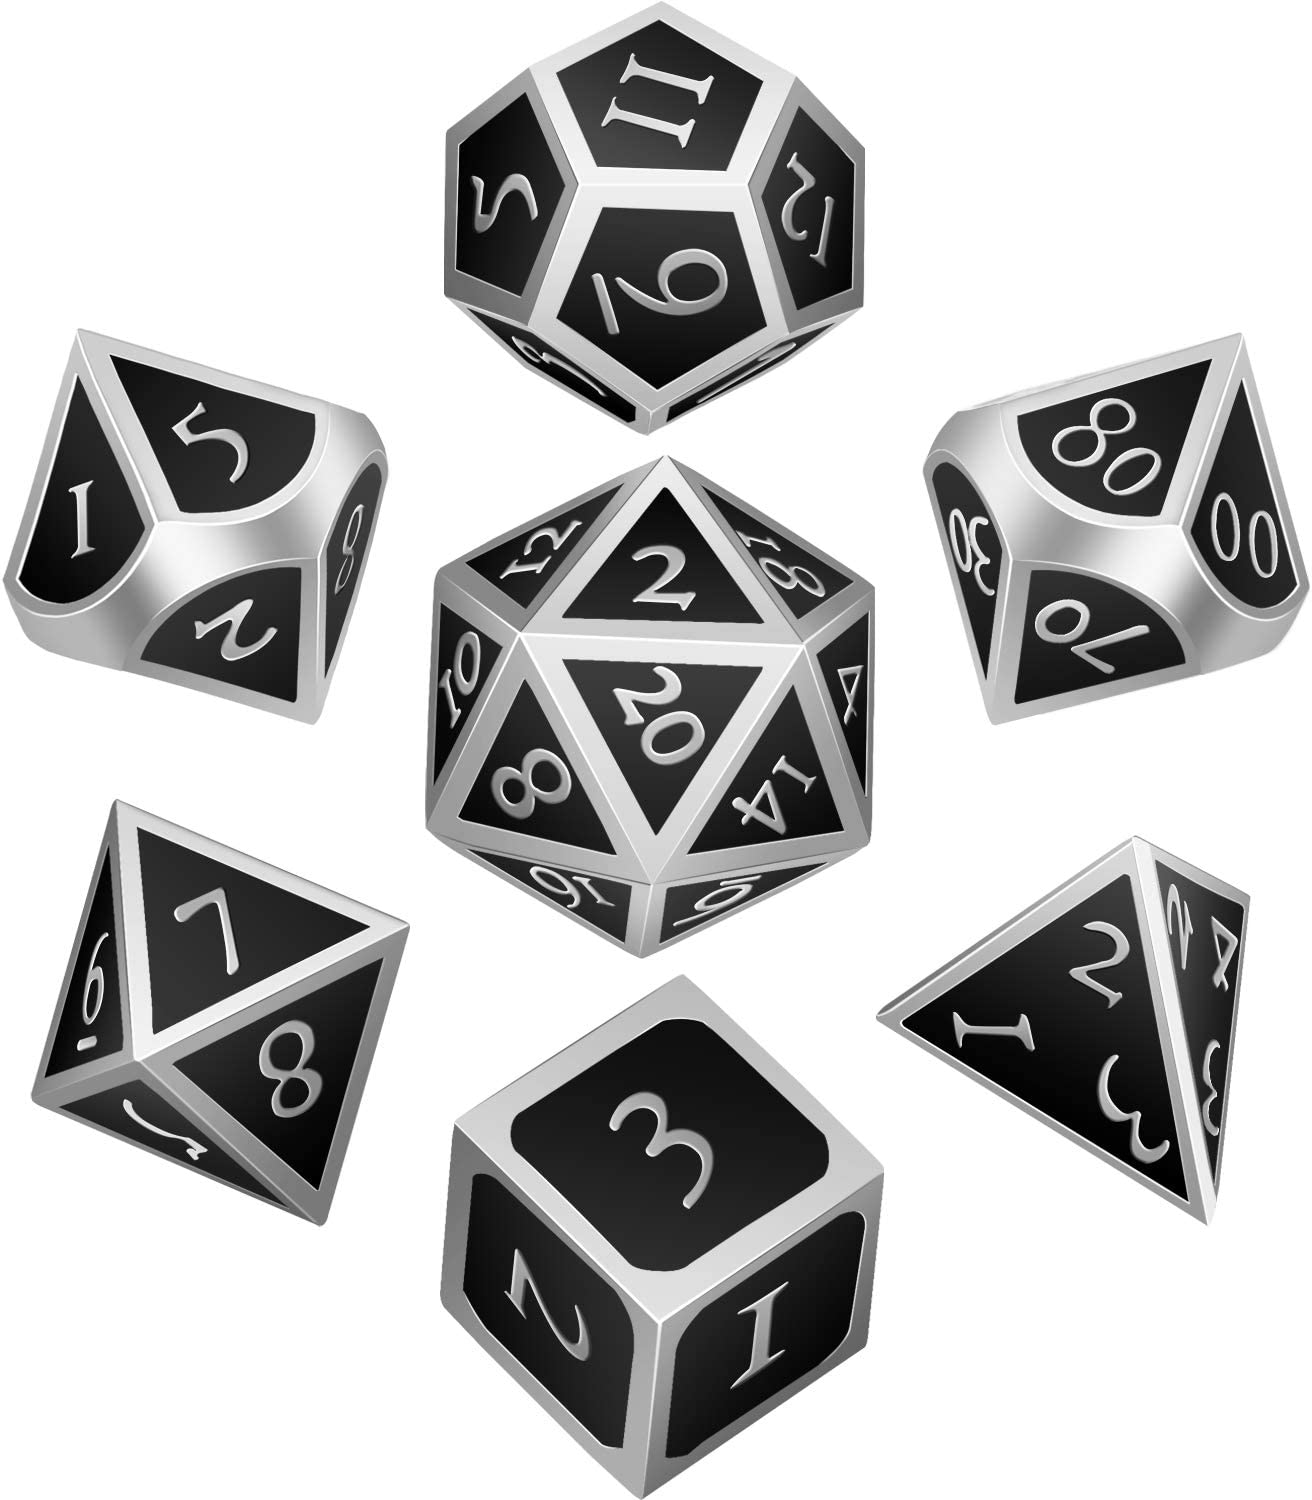 Hestya 7 Pieces Metal Dices Set DND Game Polyhedral Solid Metal D&D Dice Set with Storage Bag and Zinc Alloy with Enamel for Role Playing Game Dungeons and Dragons, Math Teaching (Silver Edge Black)